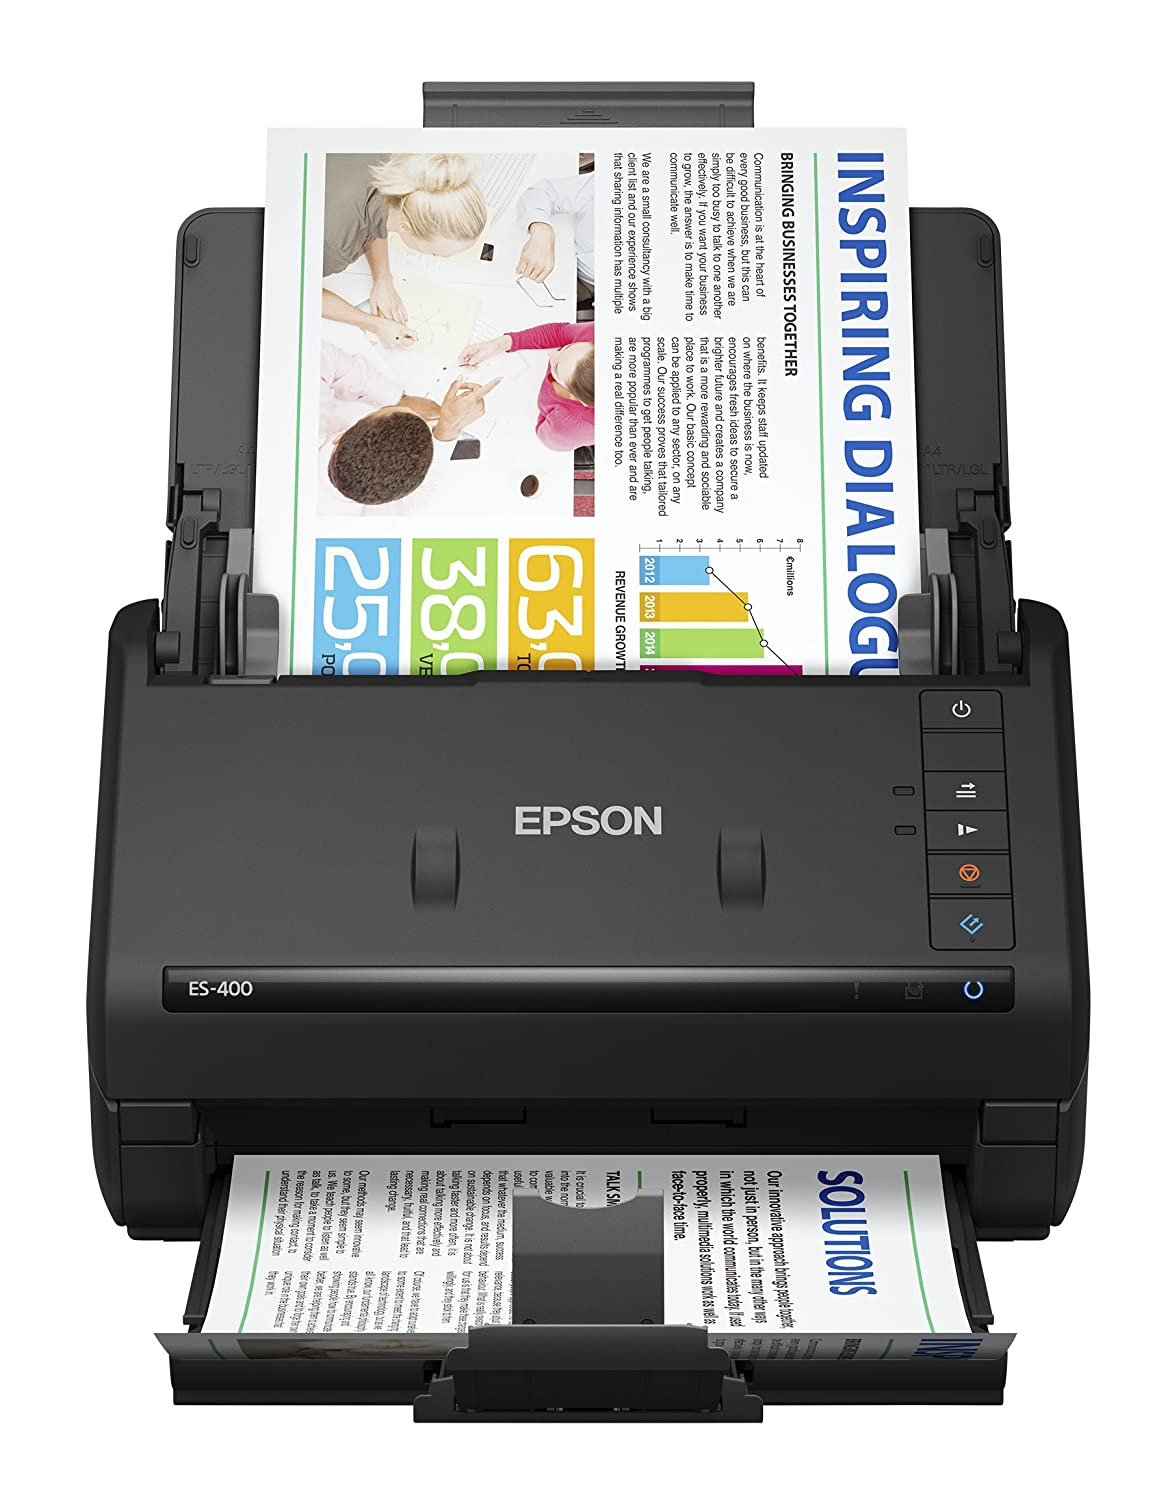 Epson Workforce ES-400 Scanner Black Friday Deals 2020